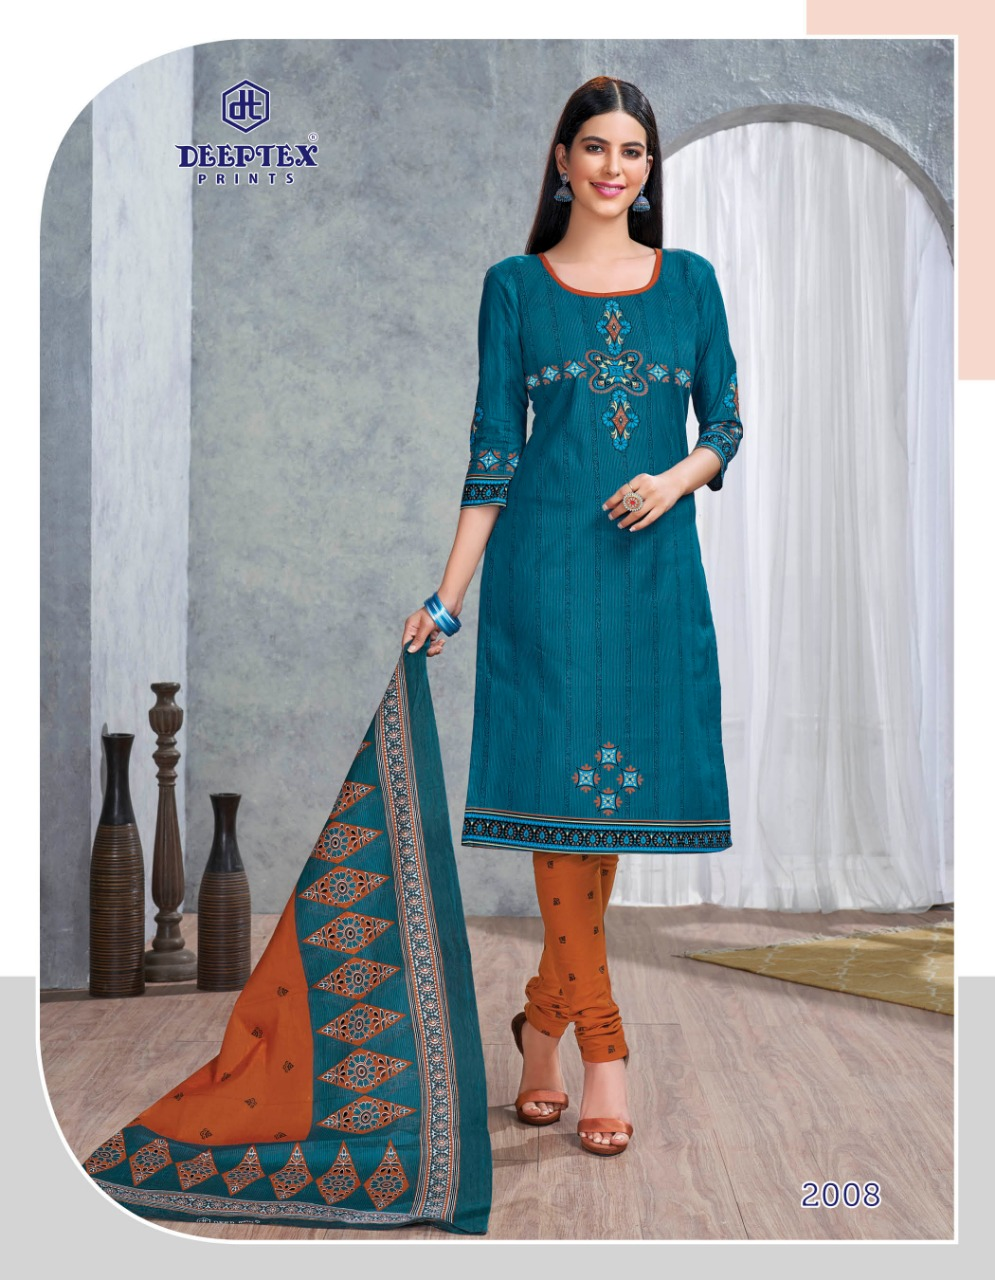 Deeptex Prints Anushka Vol 2 Printed Pure Cotton Dress Material Collection At Wholesale Rate